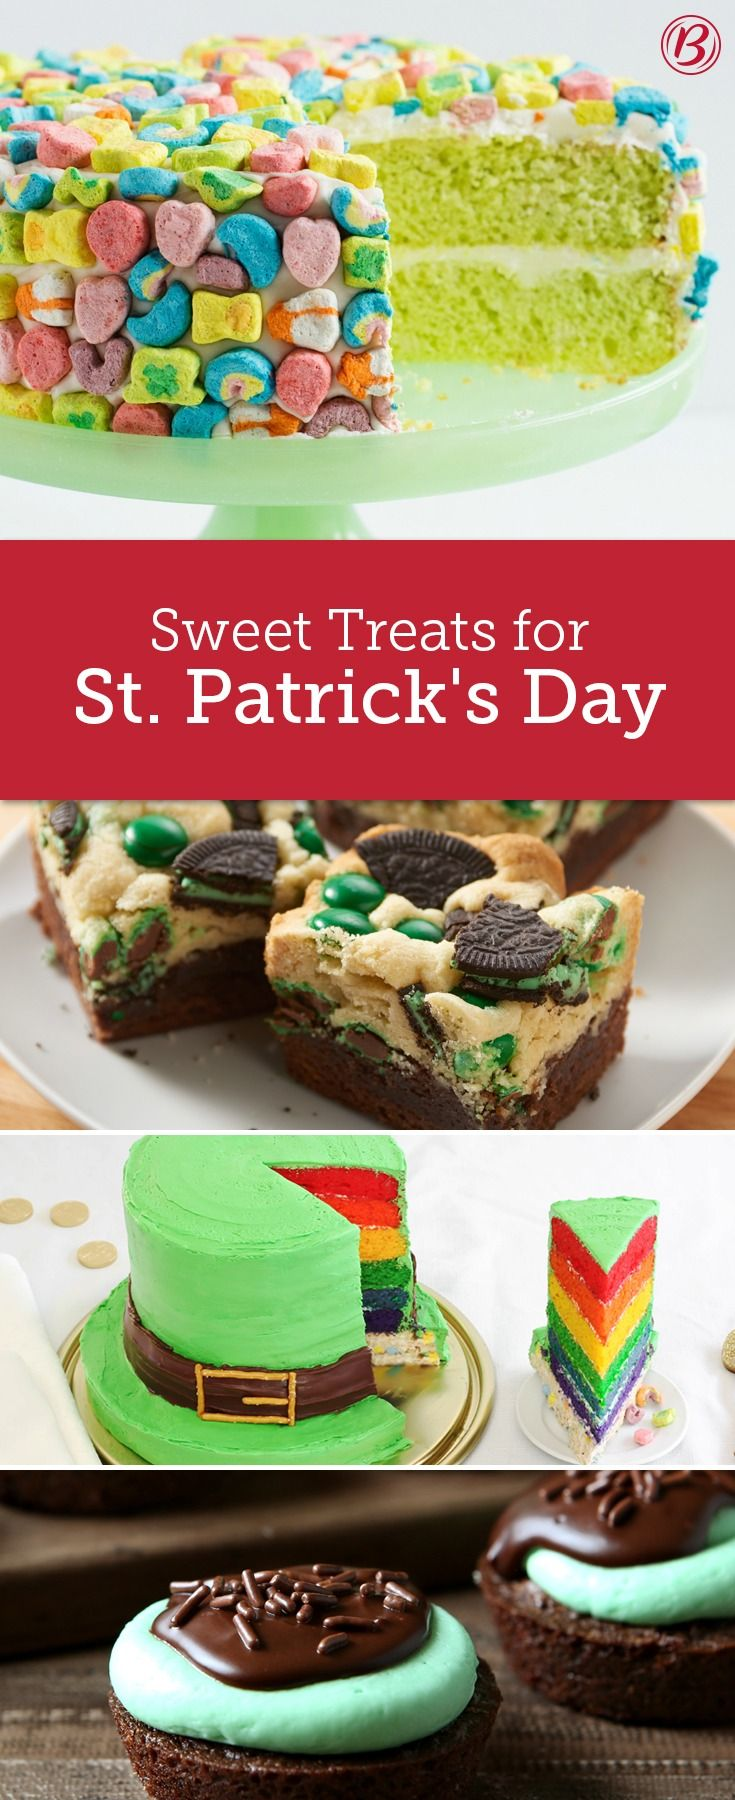 Whether it's a show-stopping cake frosted and adorned with Lucky Charms, or a rich and fudgy grasshopper mint brownie bite, these festive treats for St. Patrick's Day are guaranteed to make all of the leprechauns in your life feel extra lucky!